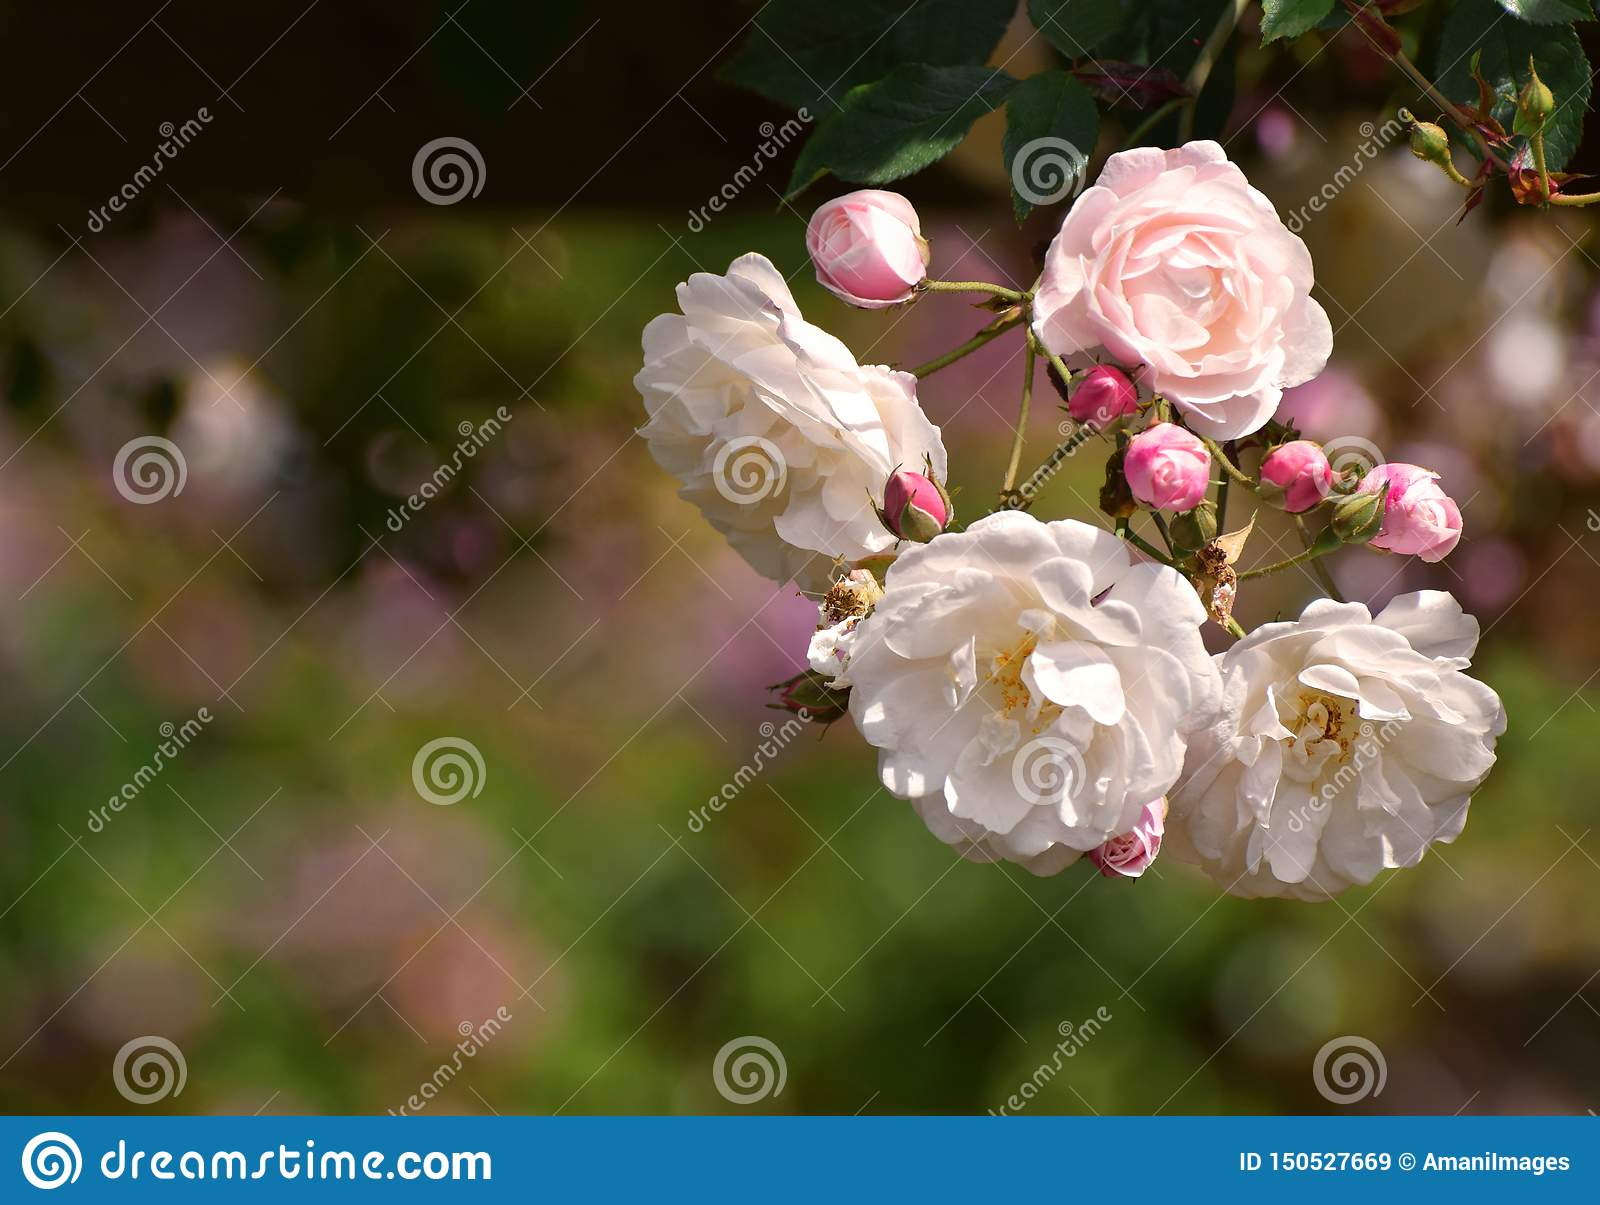 Rambling roses pale pink and white